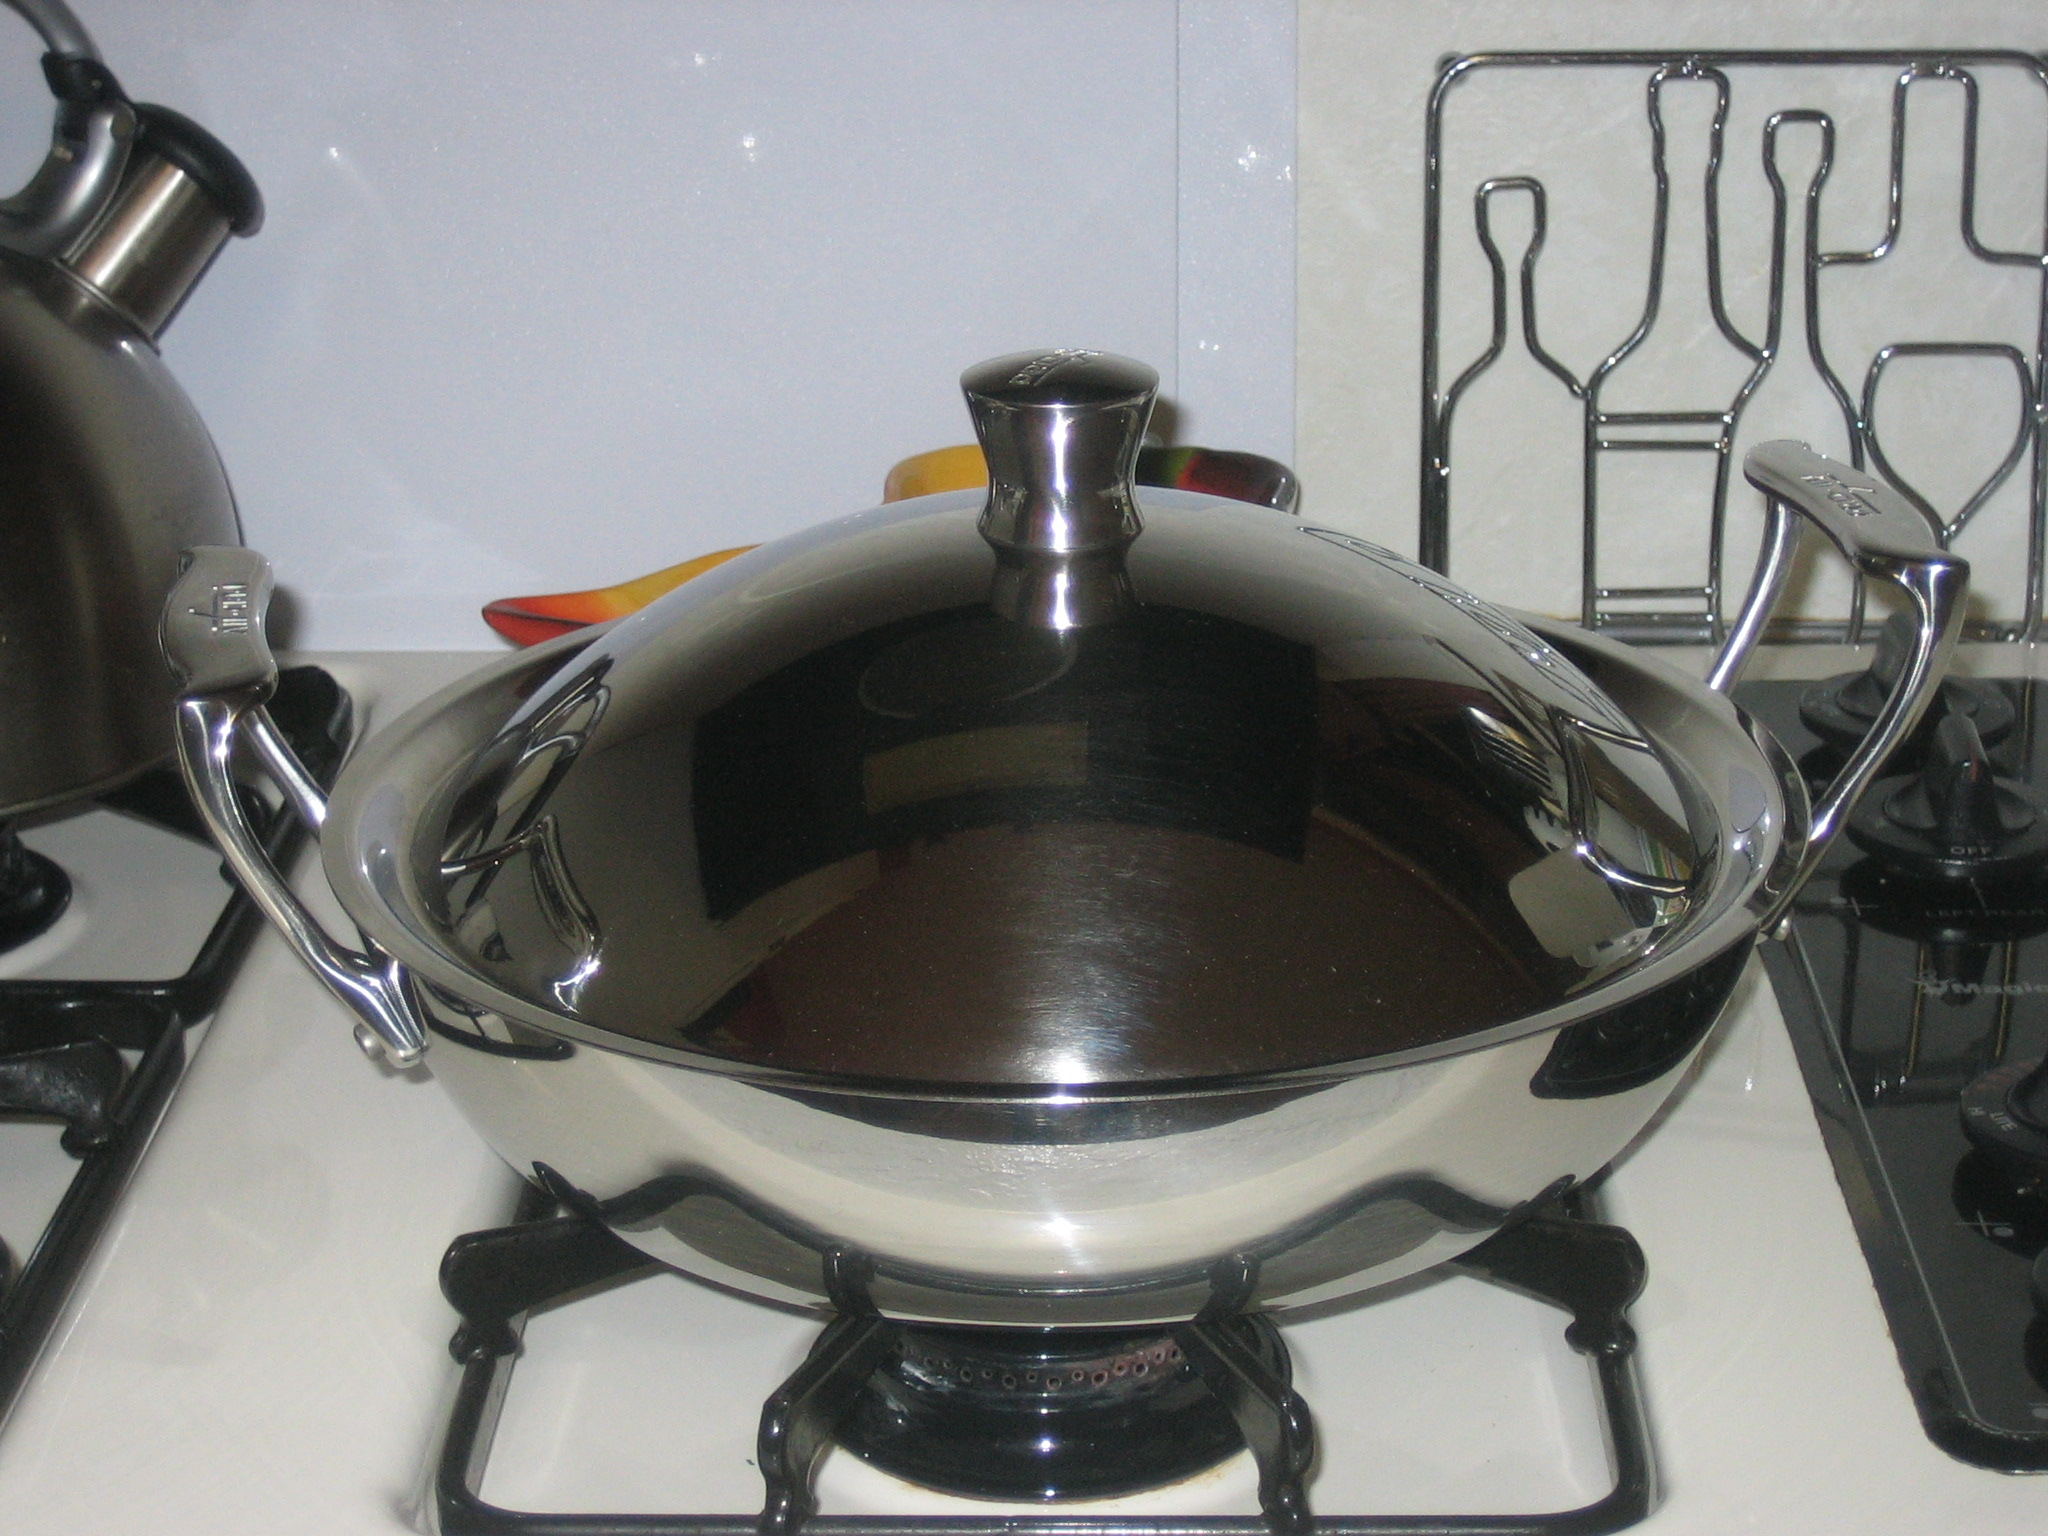 New All-Clad Karahi Pan